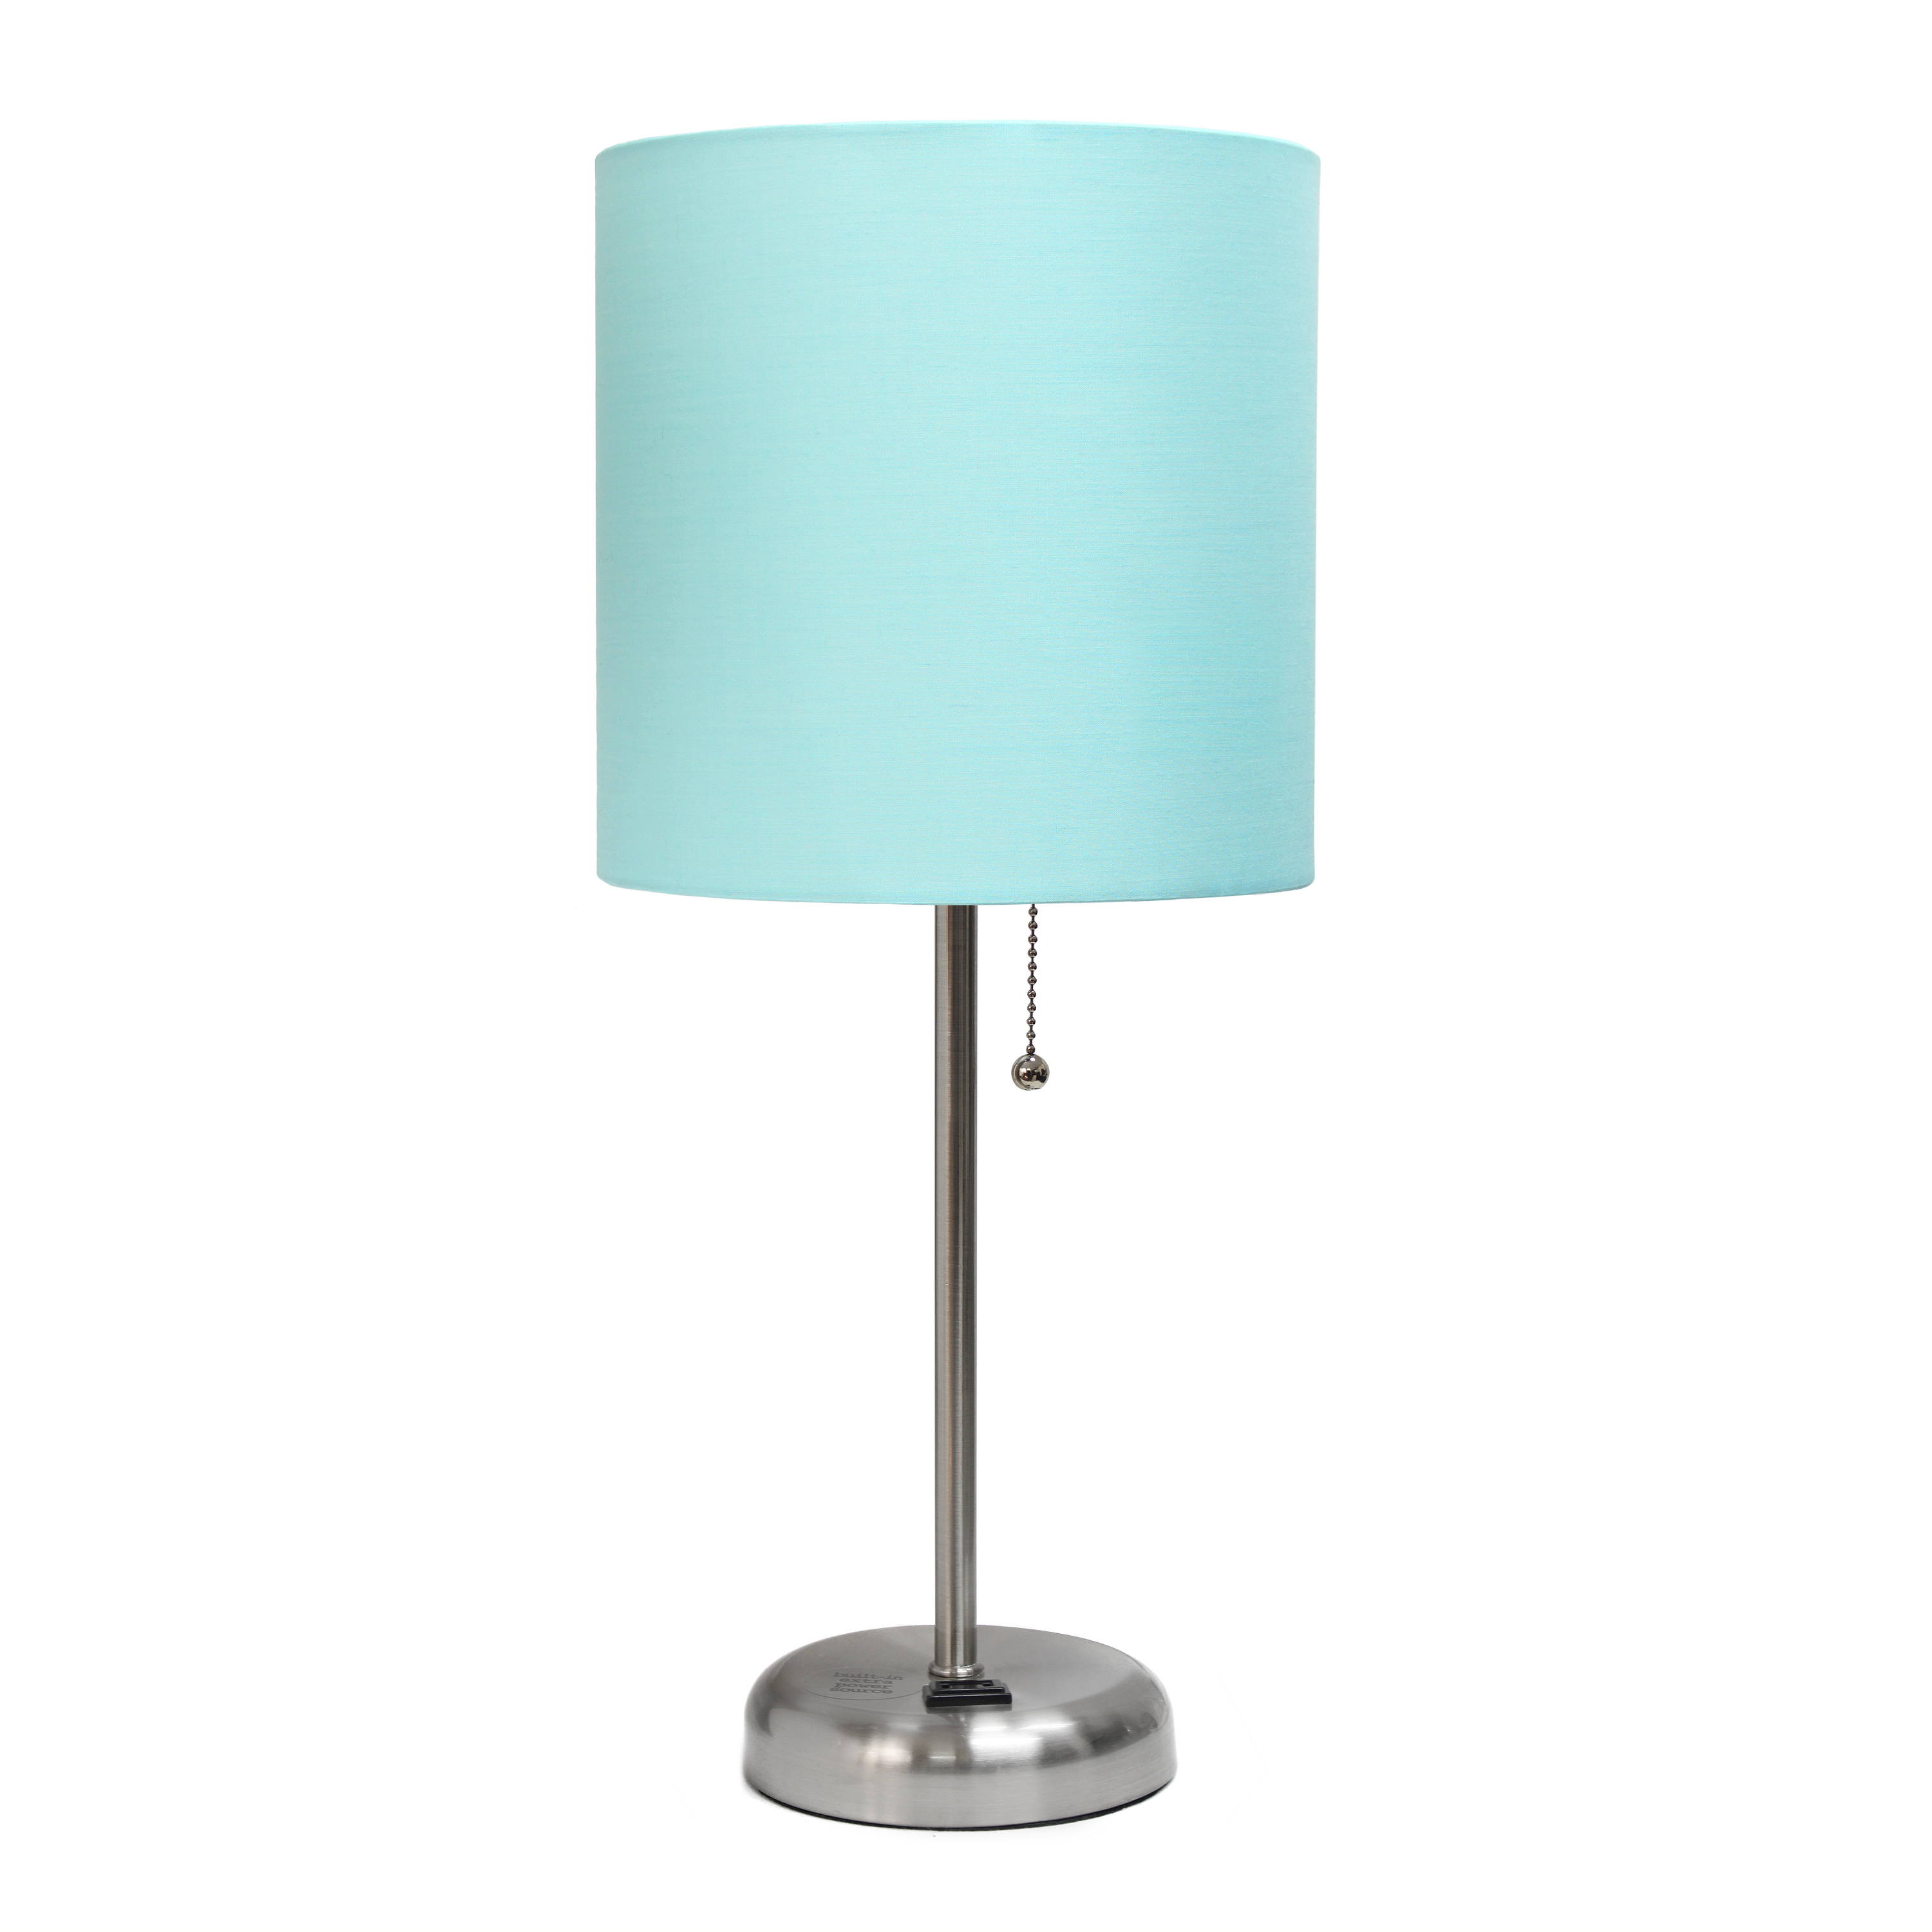 LimeLights Stick Lamp with Charging Outlet and Fabric Shade, Aqua